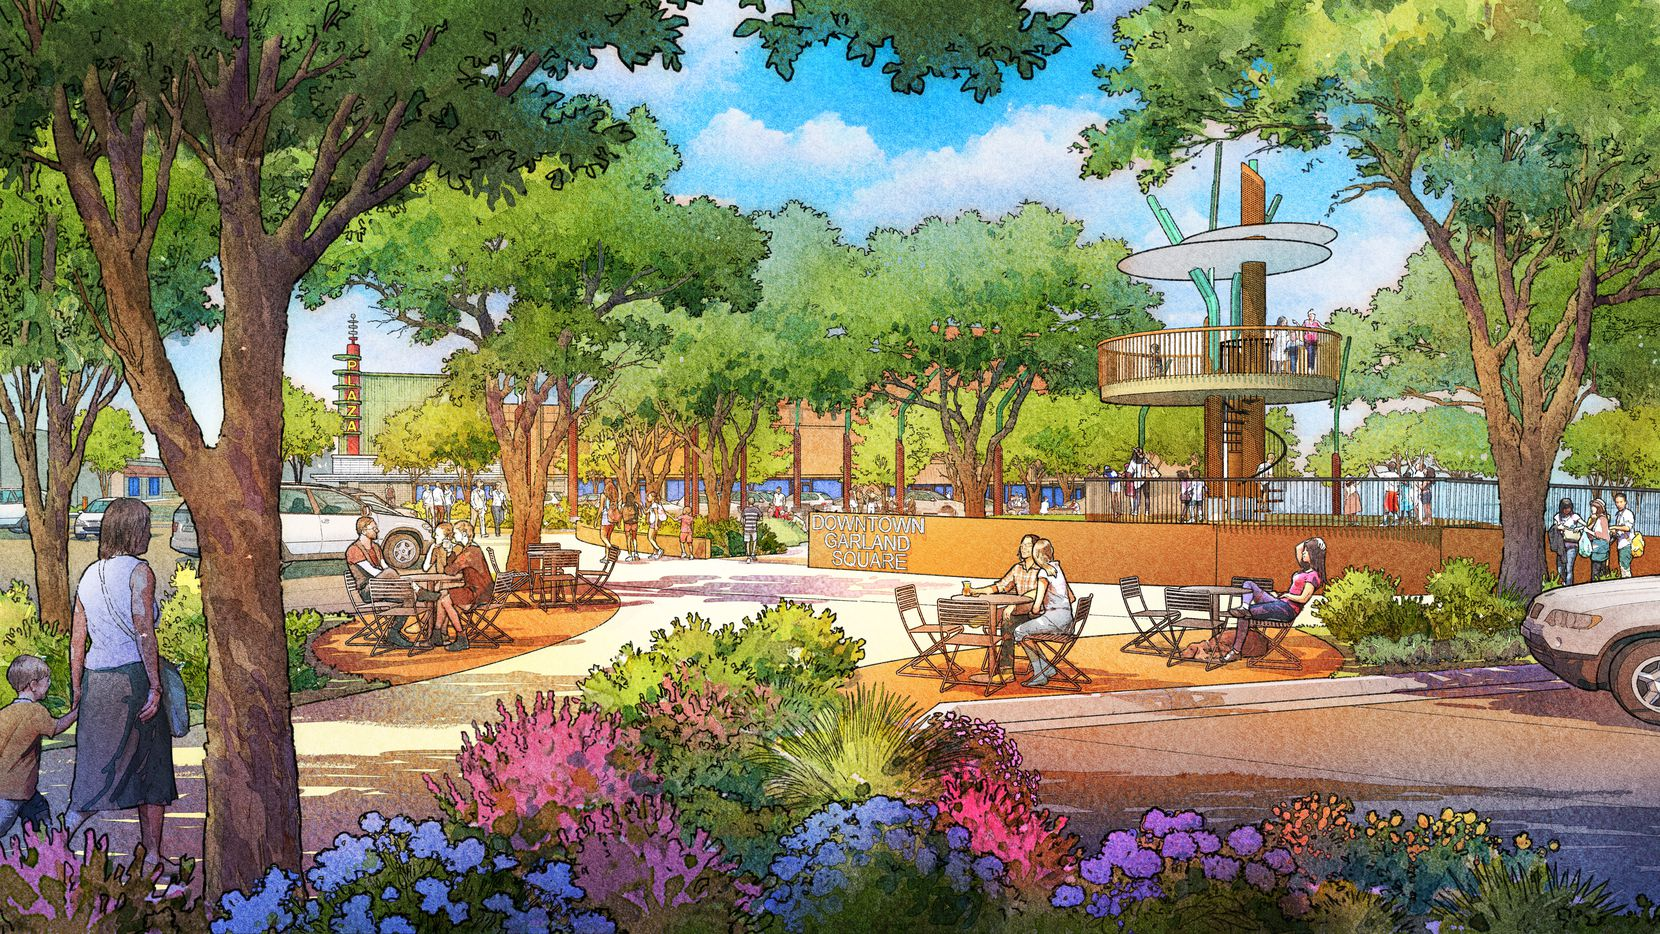 New renderings show how the city of Garland hopes to redevelop its downtown square to include more greenspace and a playground, among other features.